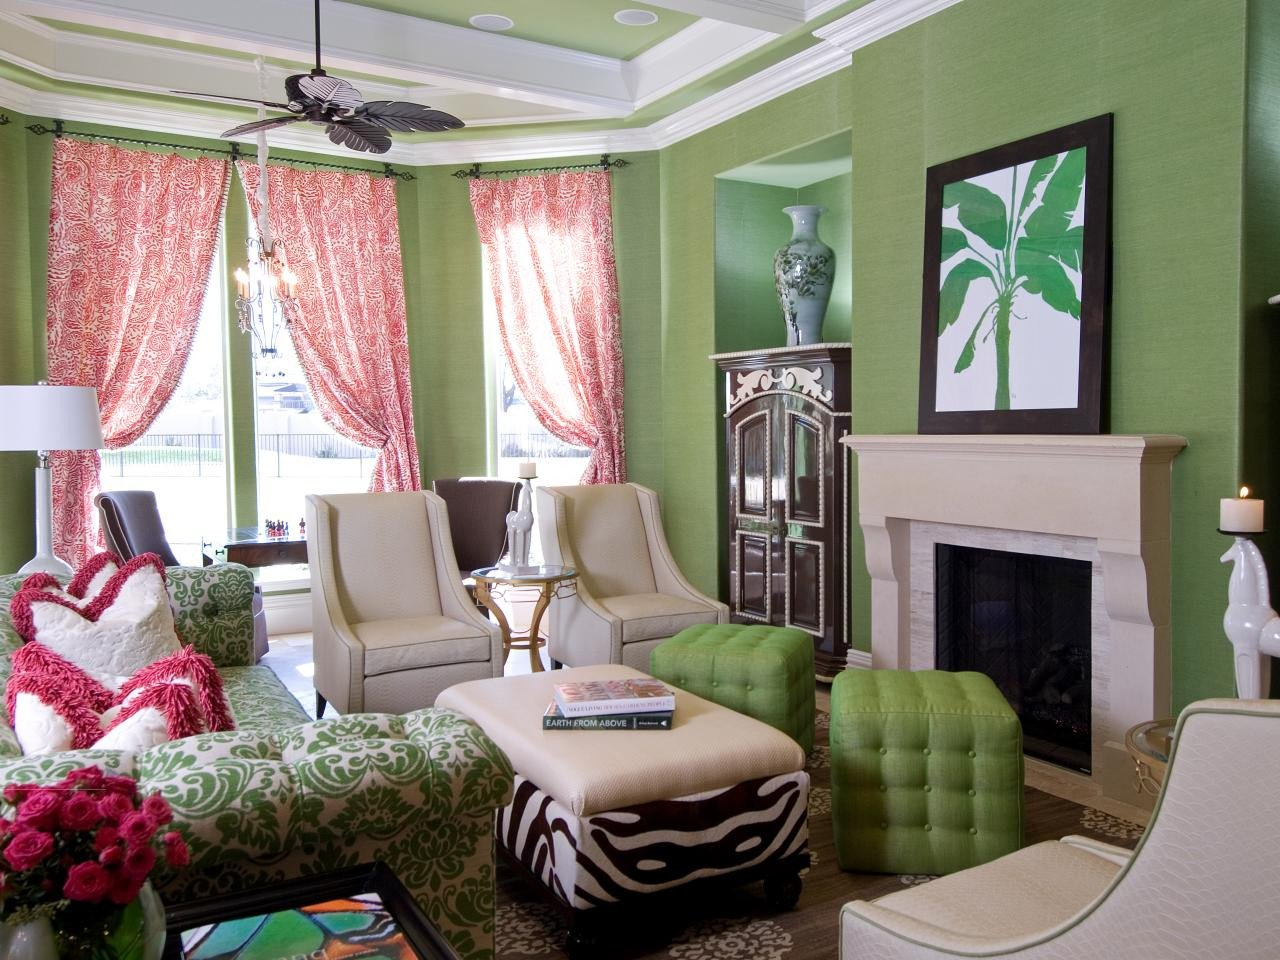 Lime Green Living Room Decor Luxury Lime Green Living Room Design with Fresh Colors